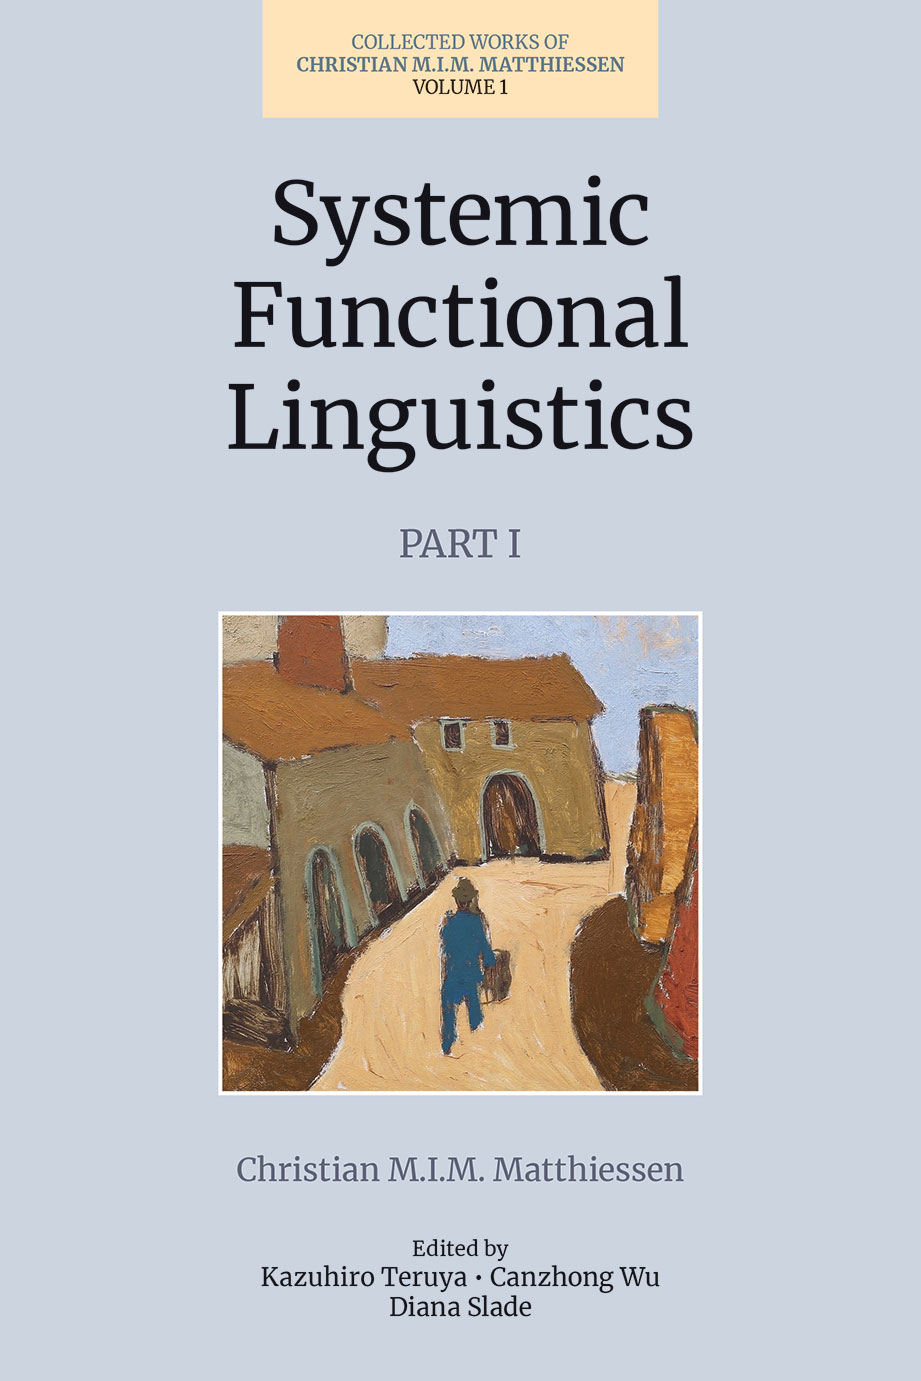 Systemic Functional Linguistics, Part 1 - Volume 1 - Christian M.I.M. Matthiessen